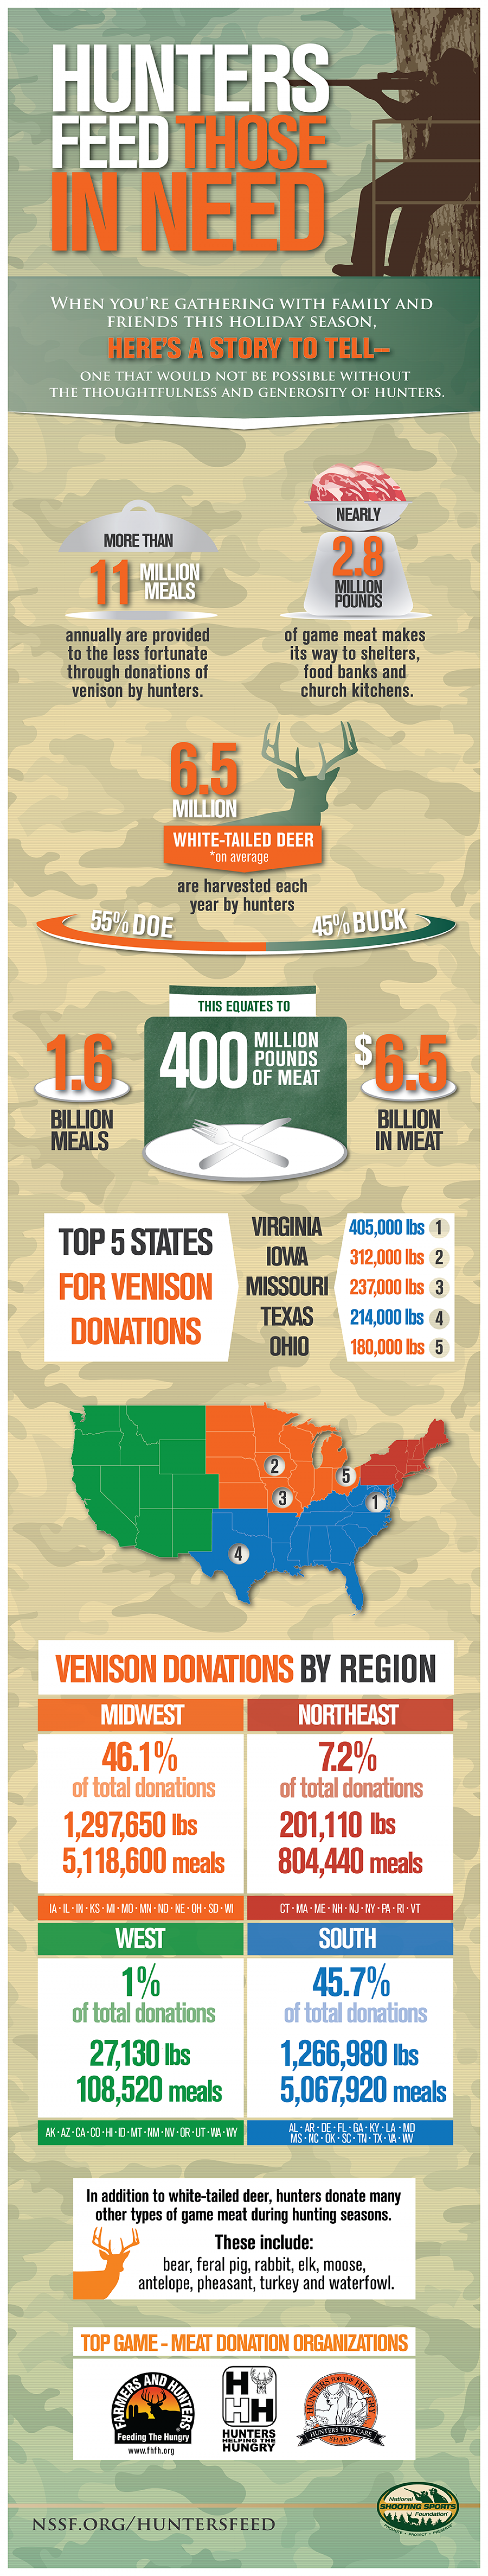 Hunters Feed Those In Need Infographic